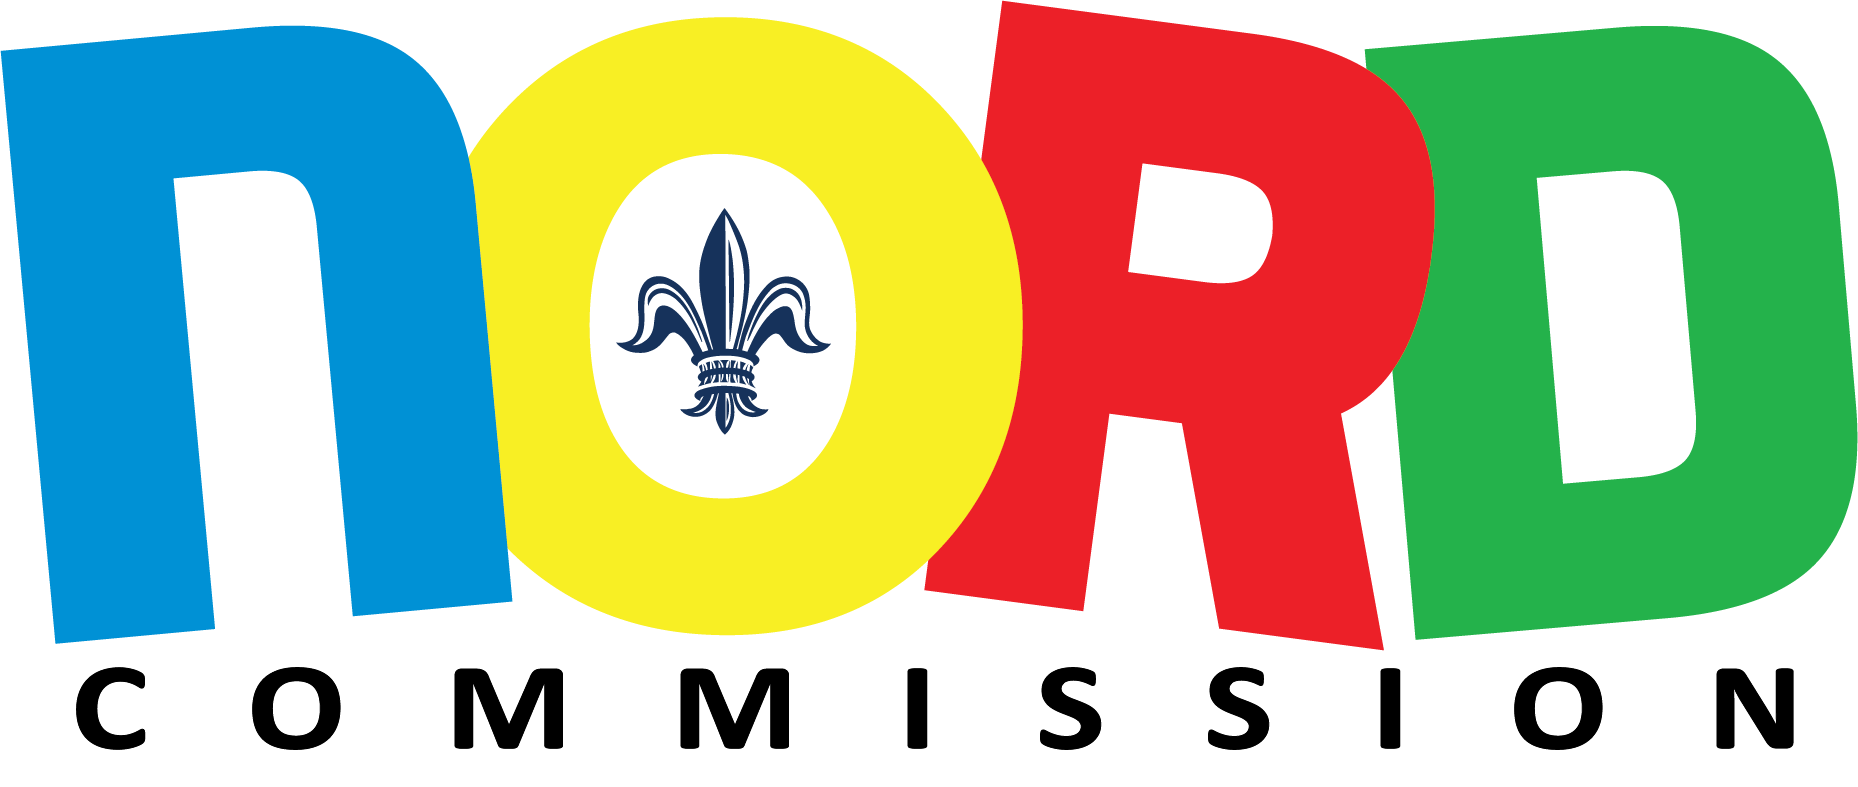 NORD-Commission-text-Logo_FINAL.png